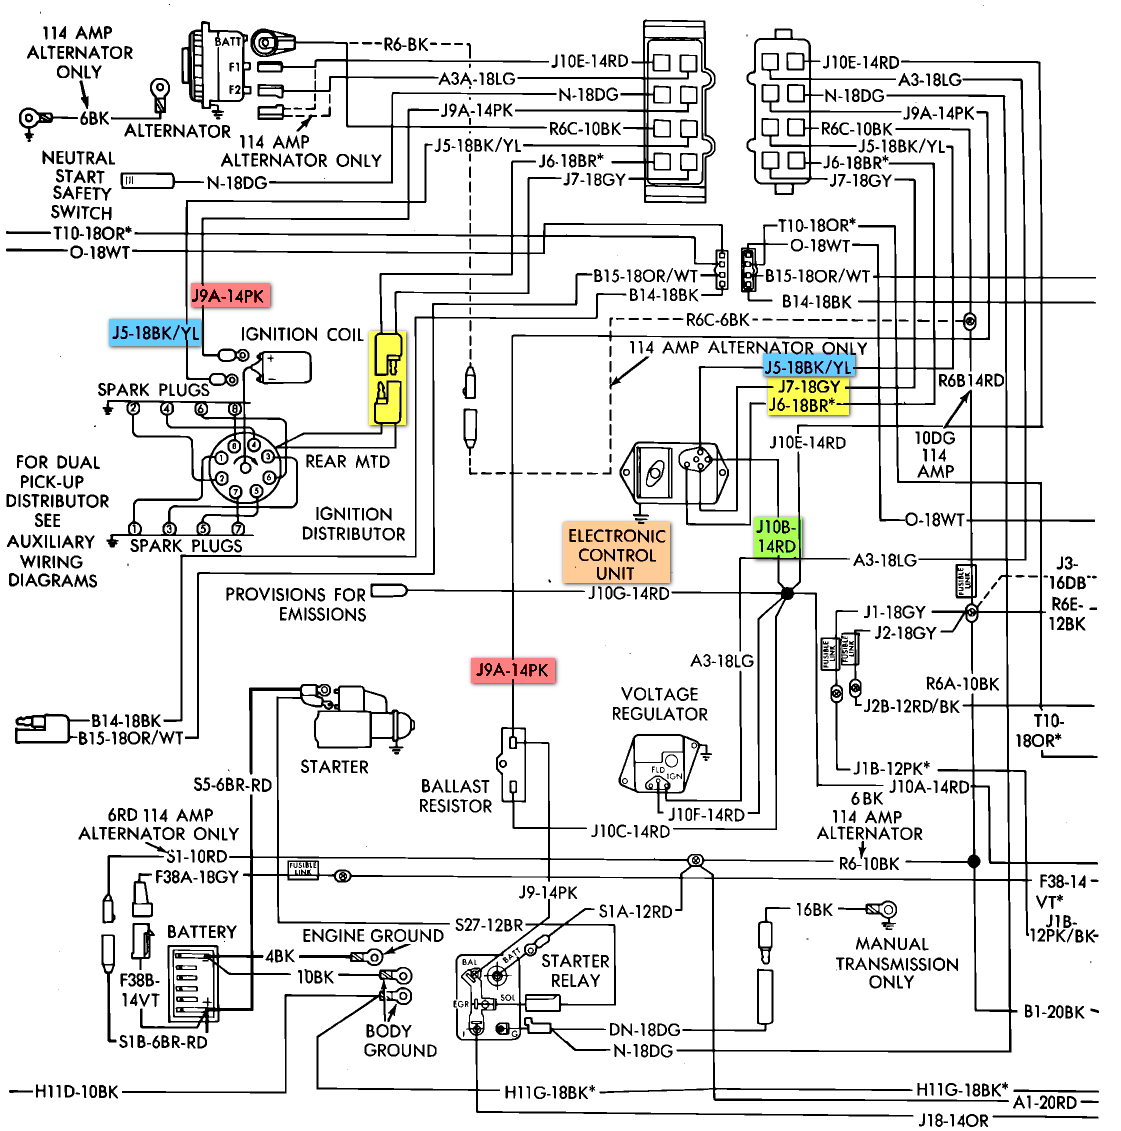 Diagram 1977 Dodge Motorhome Wiring Diagram Full Version Hd Quality Wiring Diagram Koehlerelectricmn Blidetoine Fr